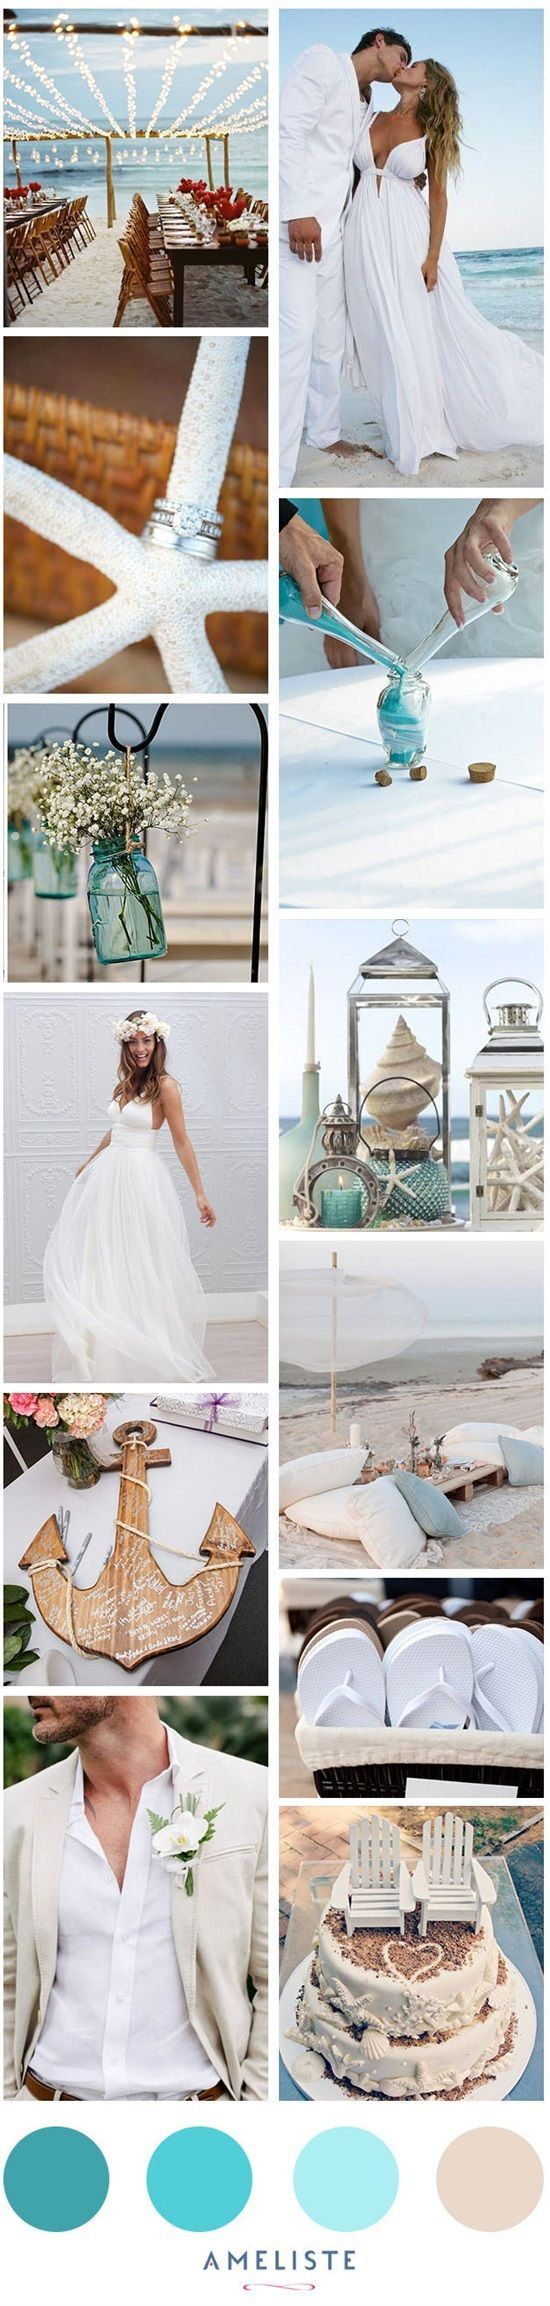 8 Of The Most Adorable Wedding Themes For Your Big Day | Weddings ...